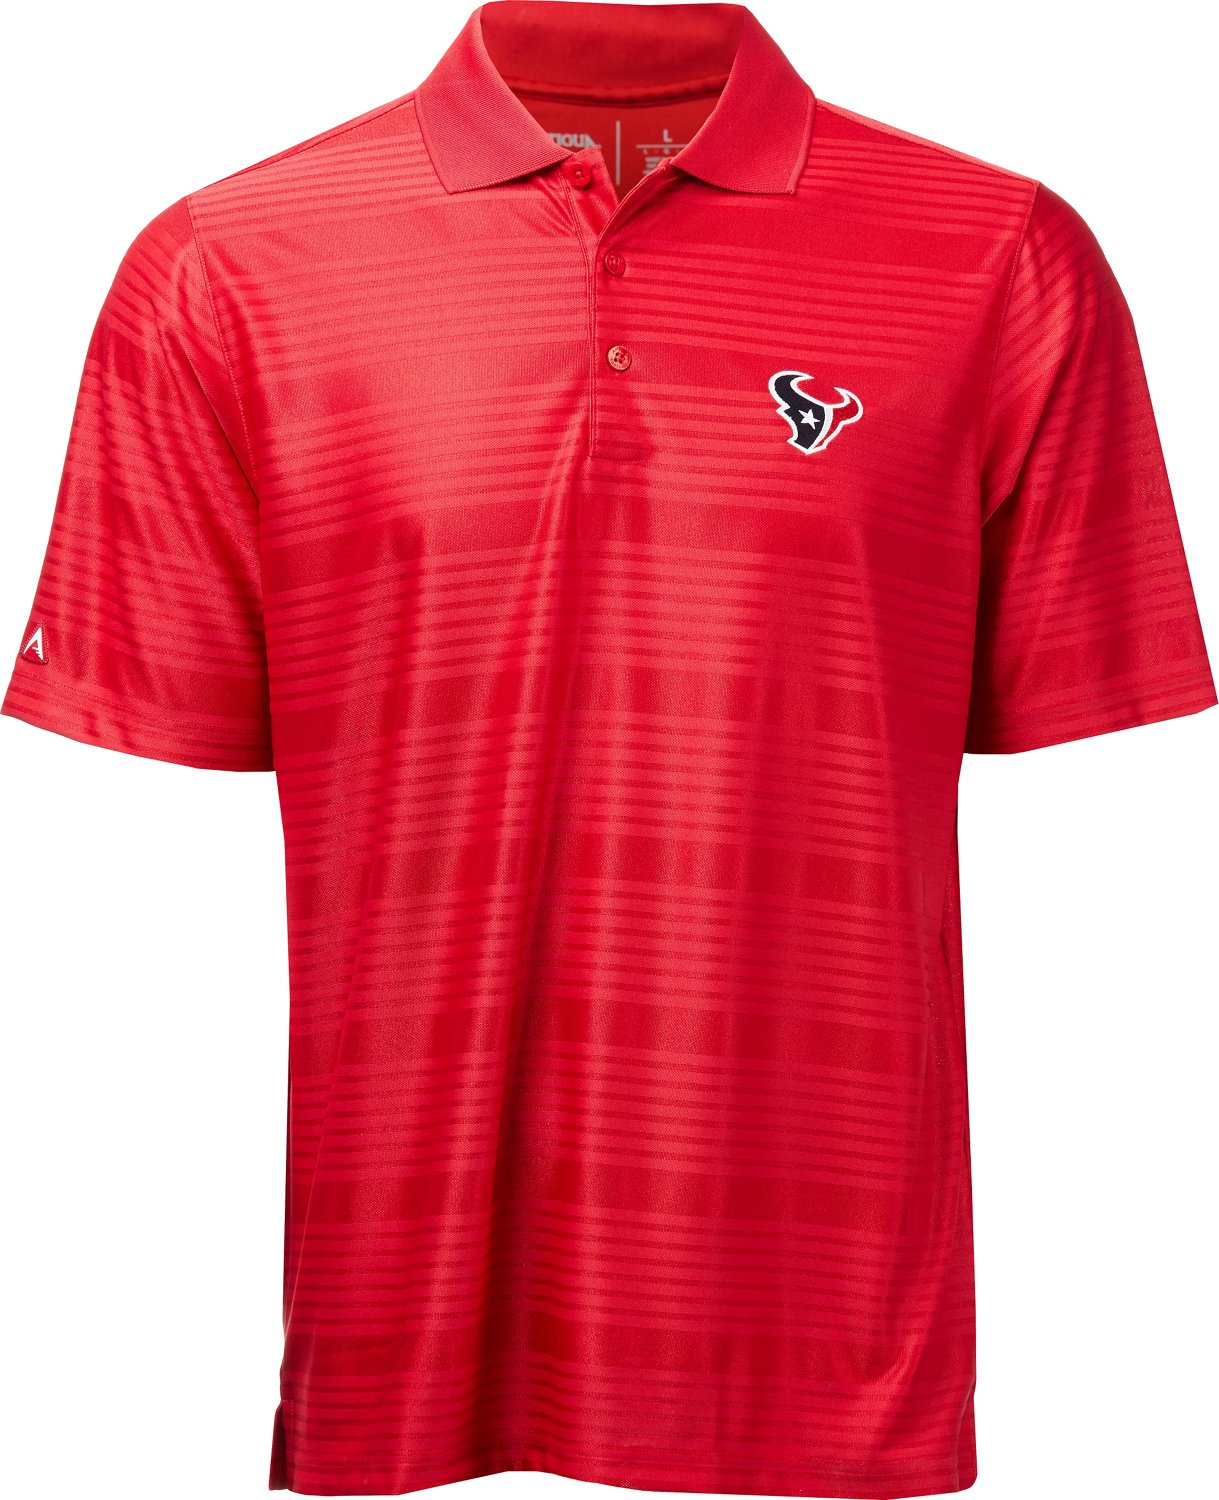 b47eb6492 Display product reviews for Antigua Men s Houston Texans Illusion Polo Shirt